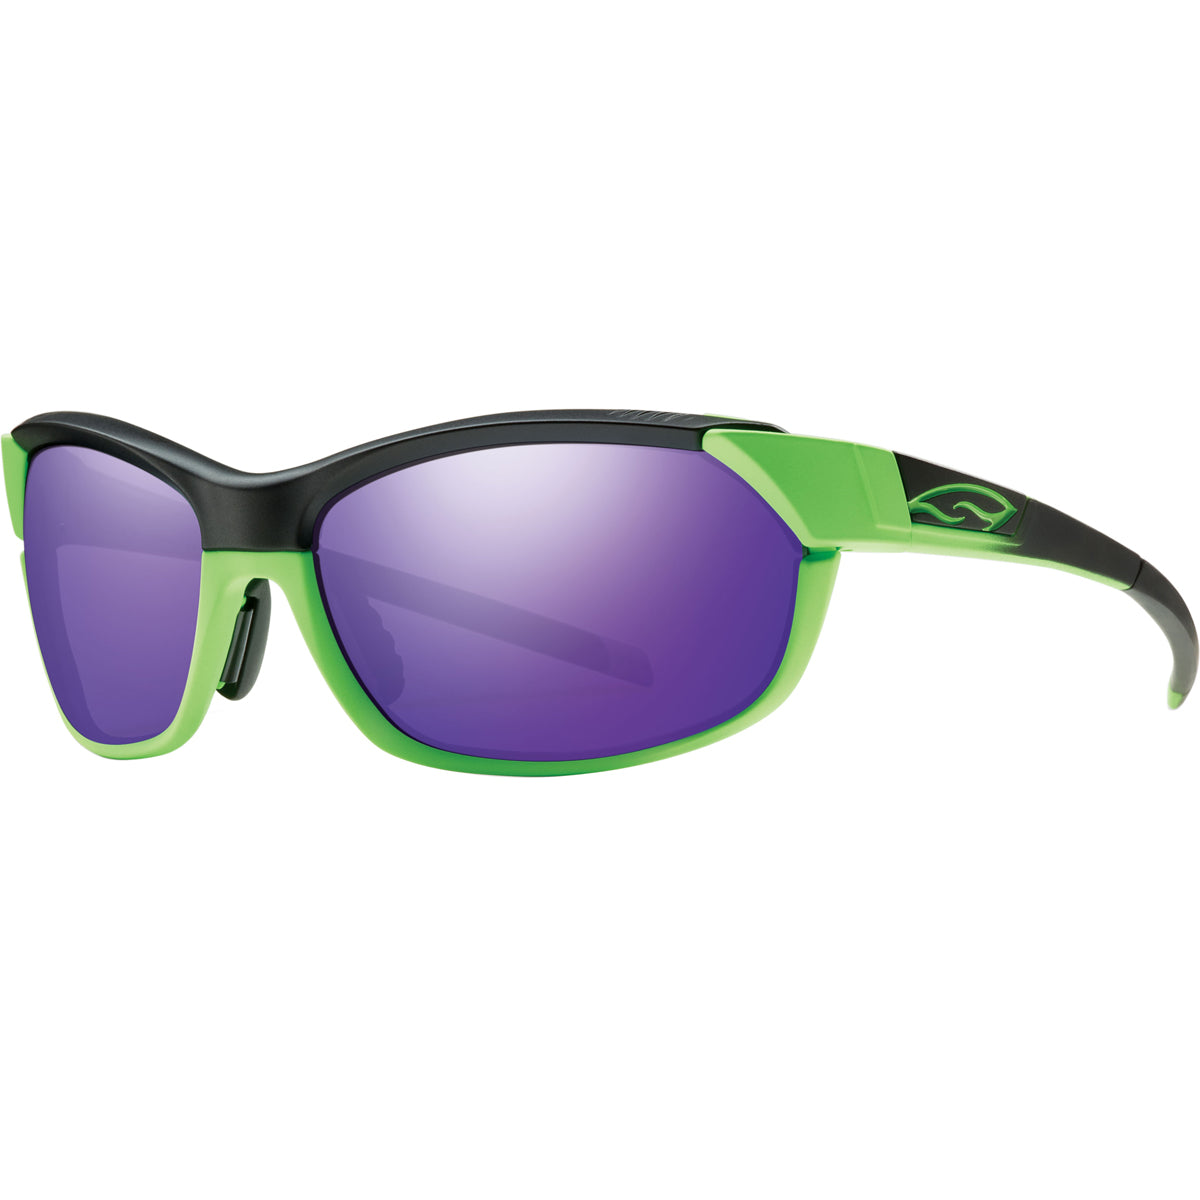 Smith Optics Pivlock Overdrive Men's Lifestyle Sunglasses-OVPCDMBTQ